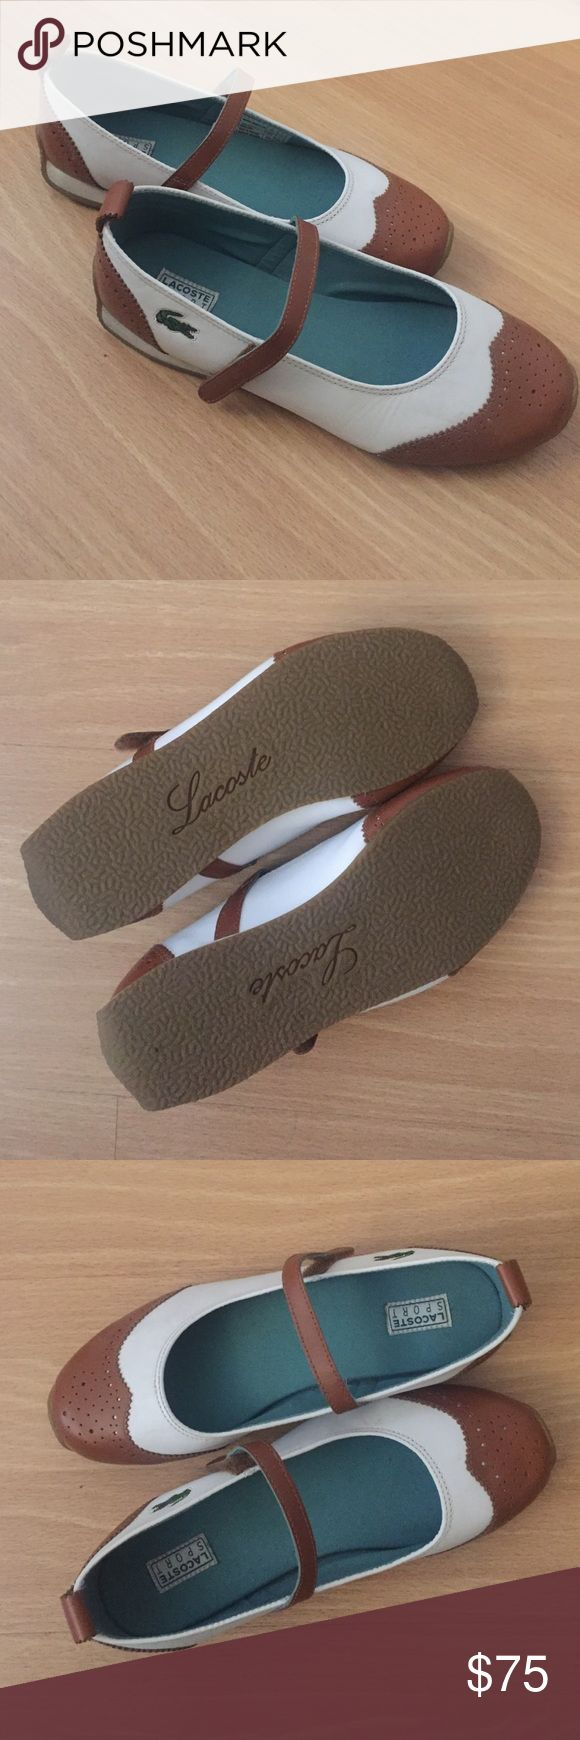 Brand New Lacoste Flats Adorable preppy Lacoste Flats. BRAND NEW NEVER WORN! - sorry I lost the box. US size 7, Euro 38. Lacoste Shoes Flats & Loafers